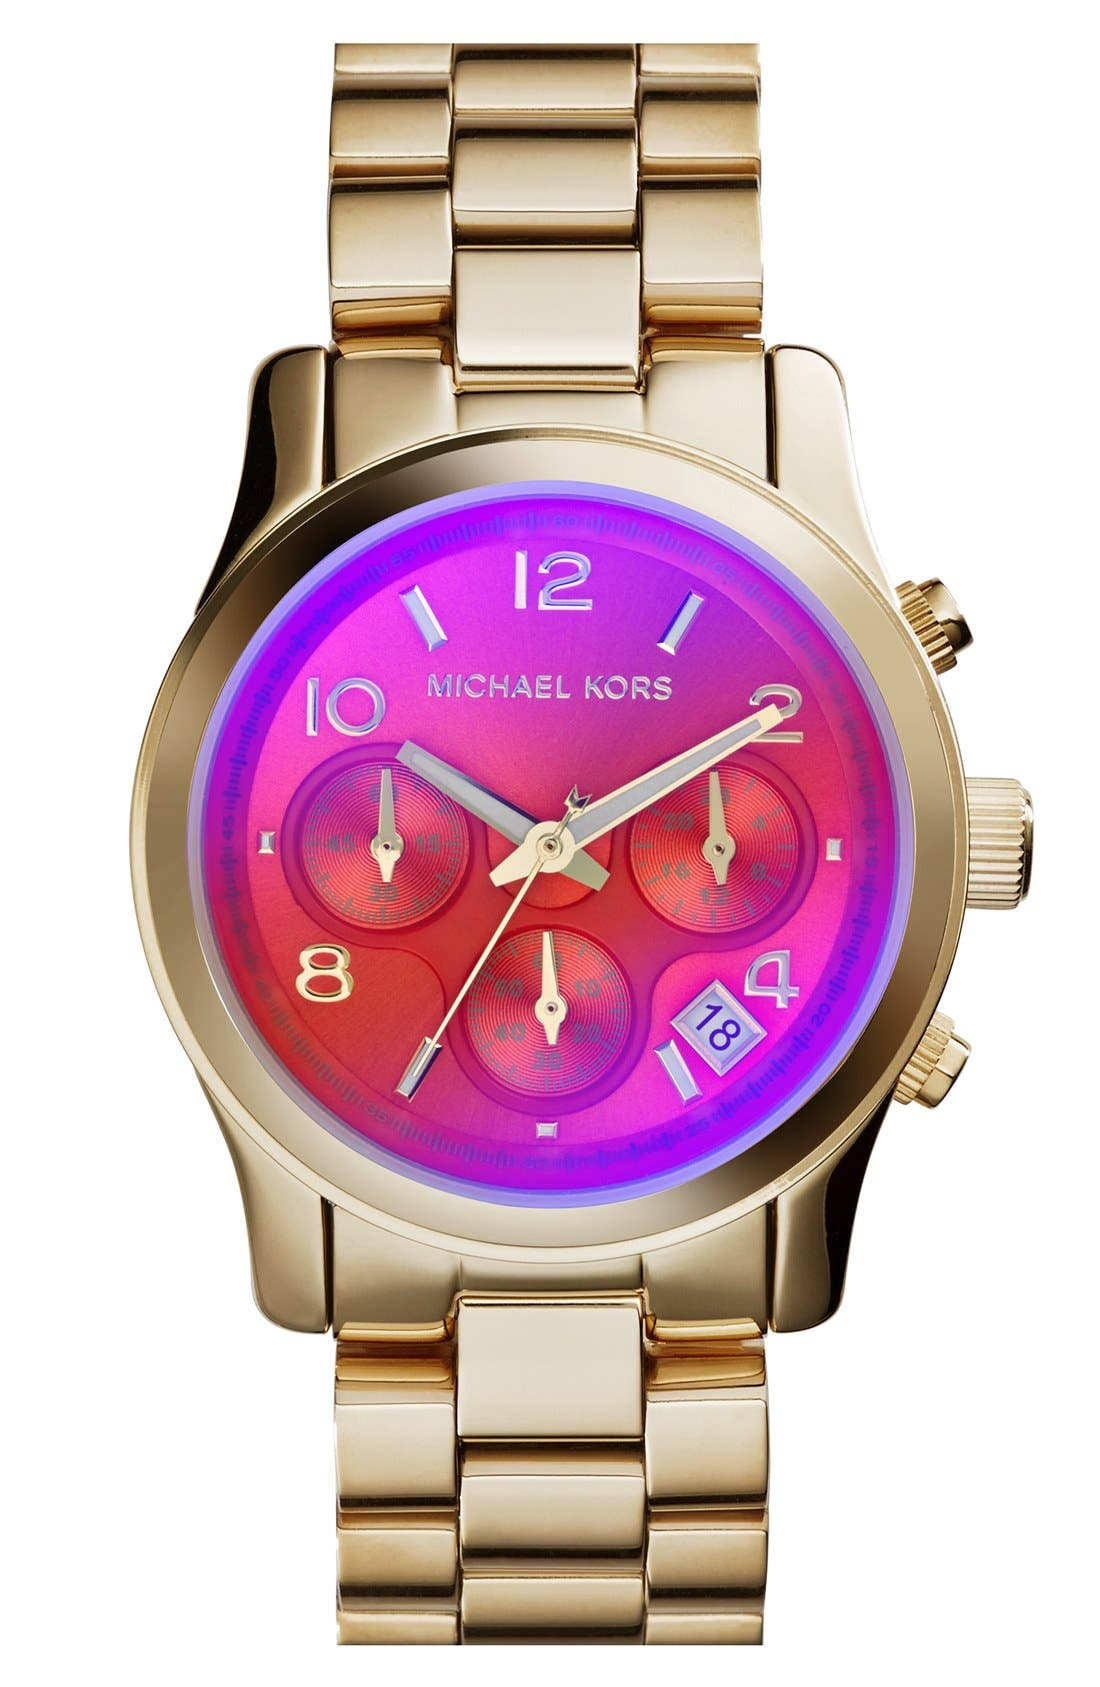 Alternate Image 1 Selected - Michael Kors 'Runway' Iridescent Crystal Chronograph Watch, 38mm